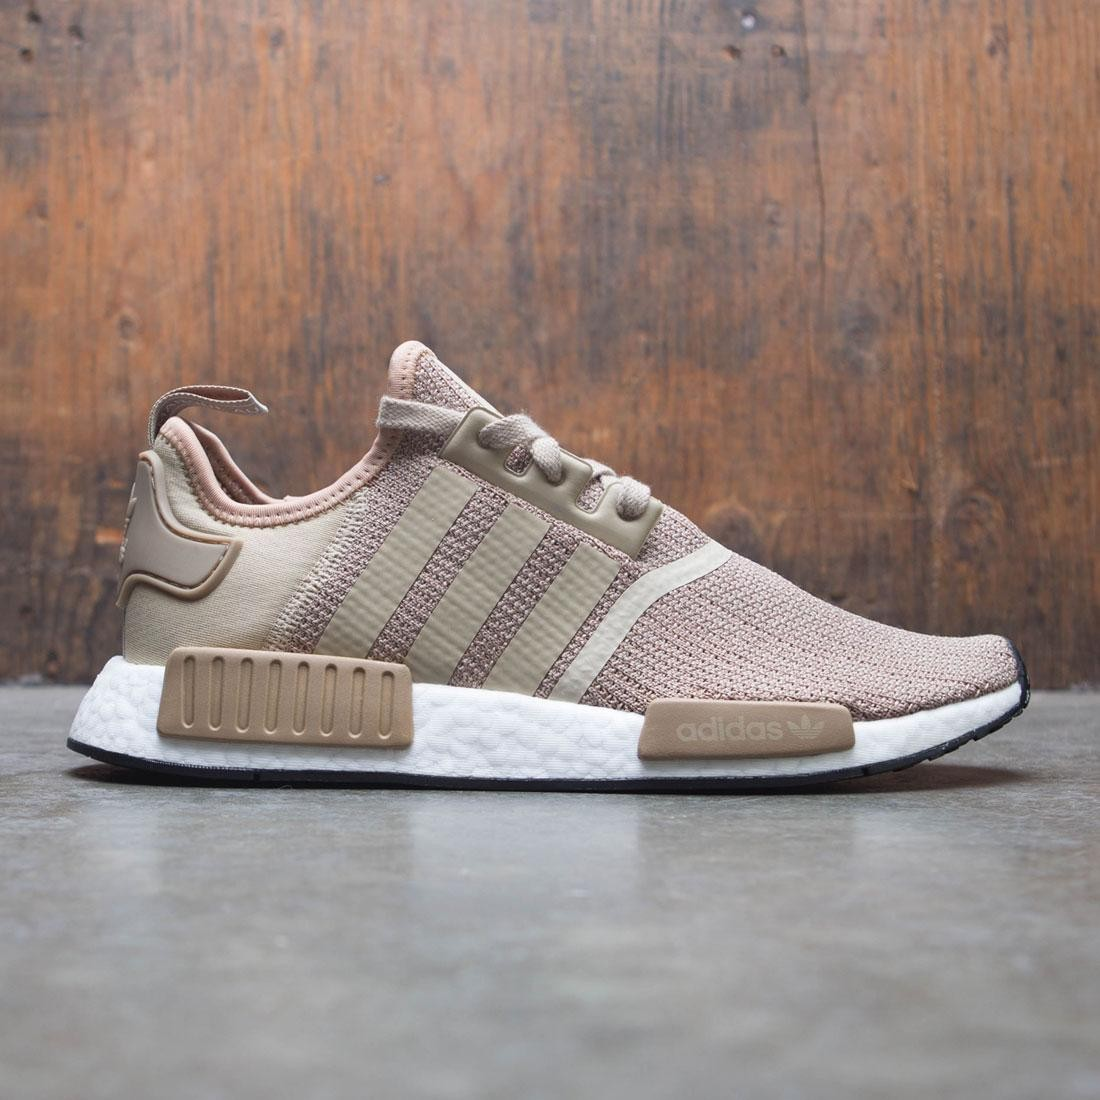 adidas nmd 1 raw gold